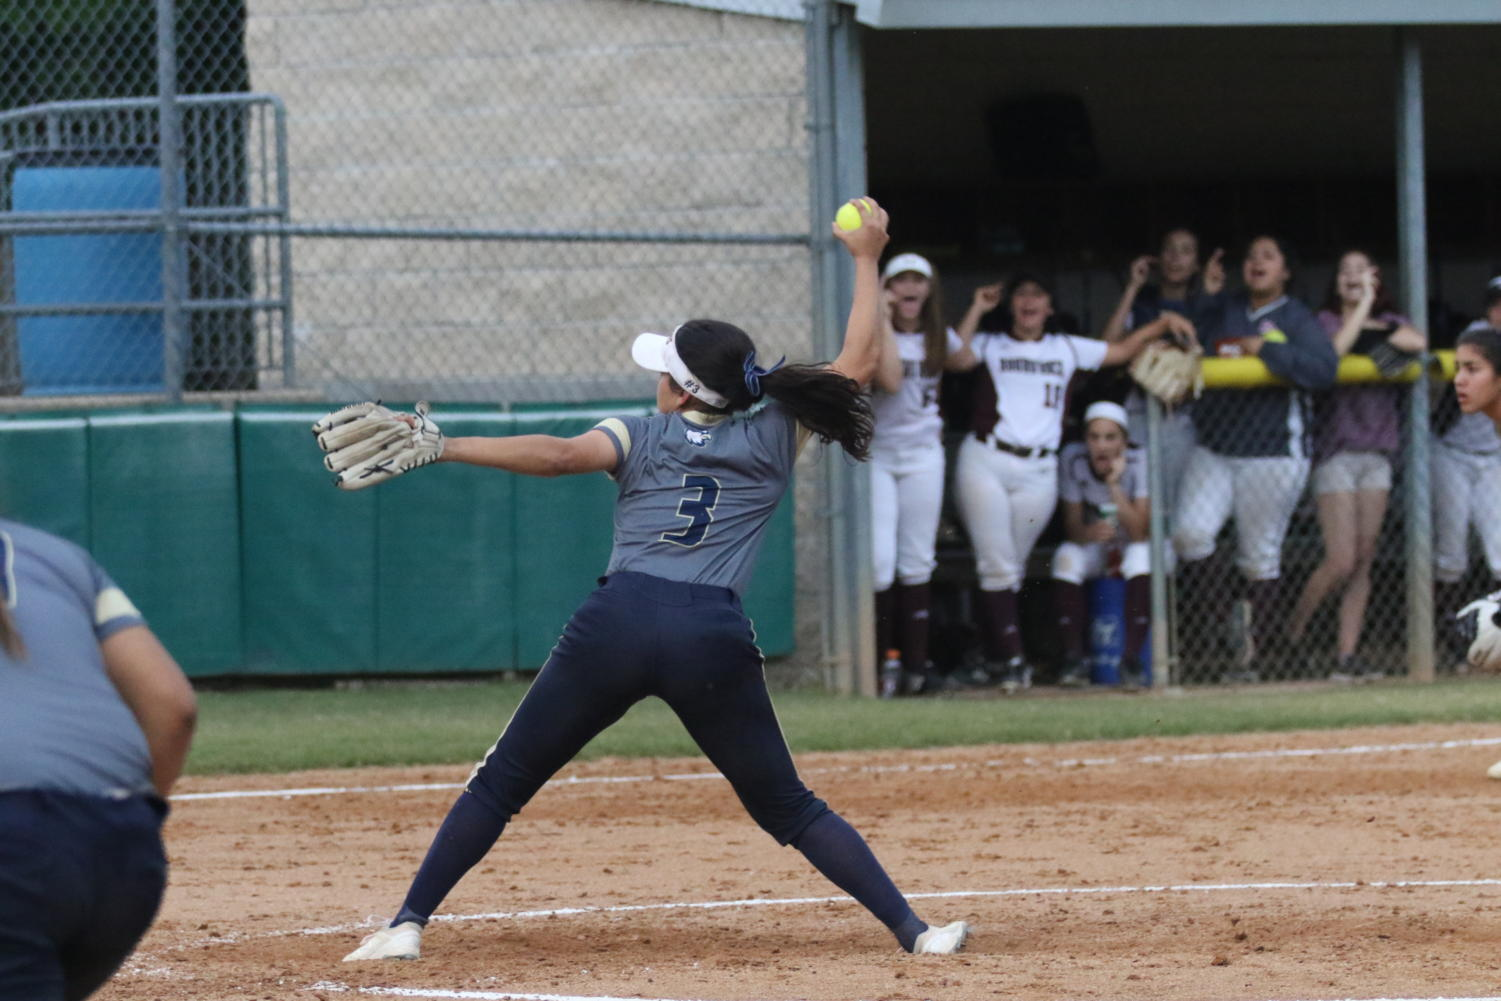 Senior Ivelisse Moreno throws a pitch for the opposing team's batter. The varsity softball team was the district champion this season, with a 8-2 record for the year.